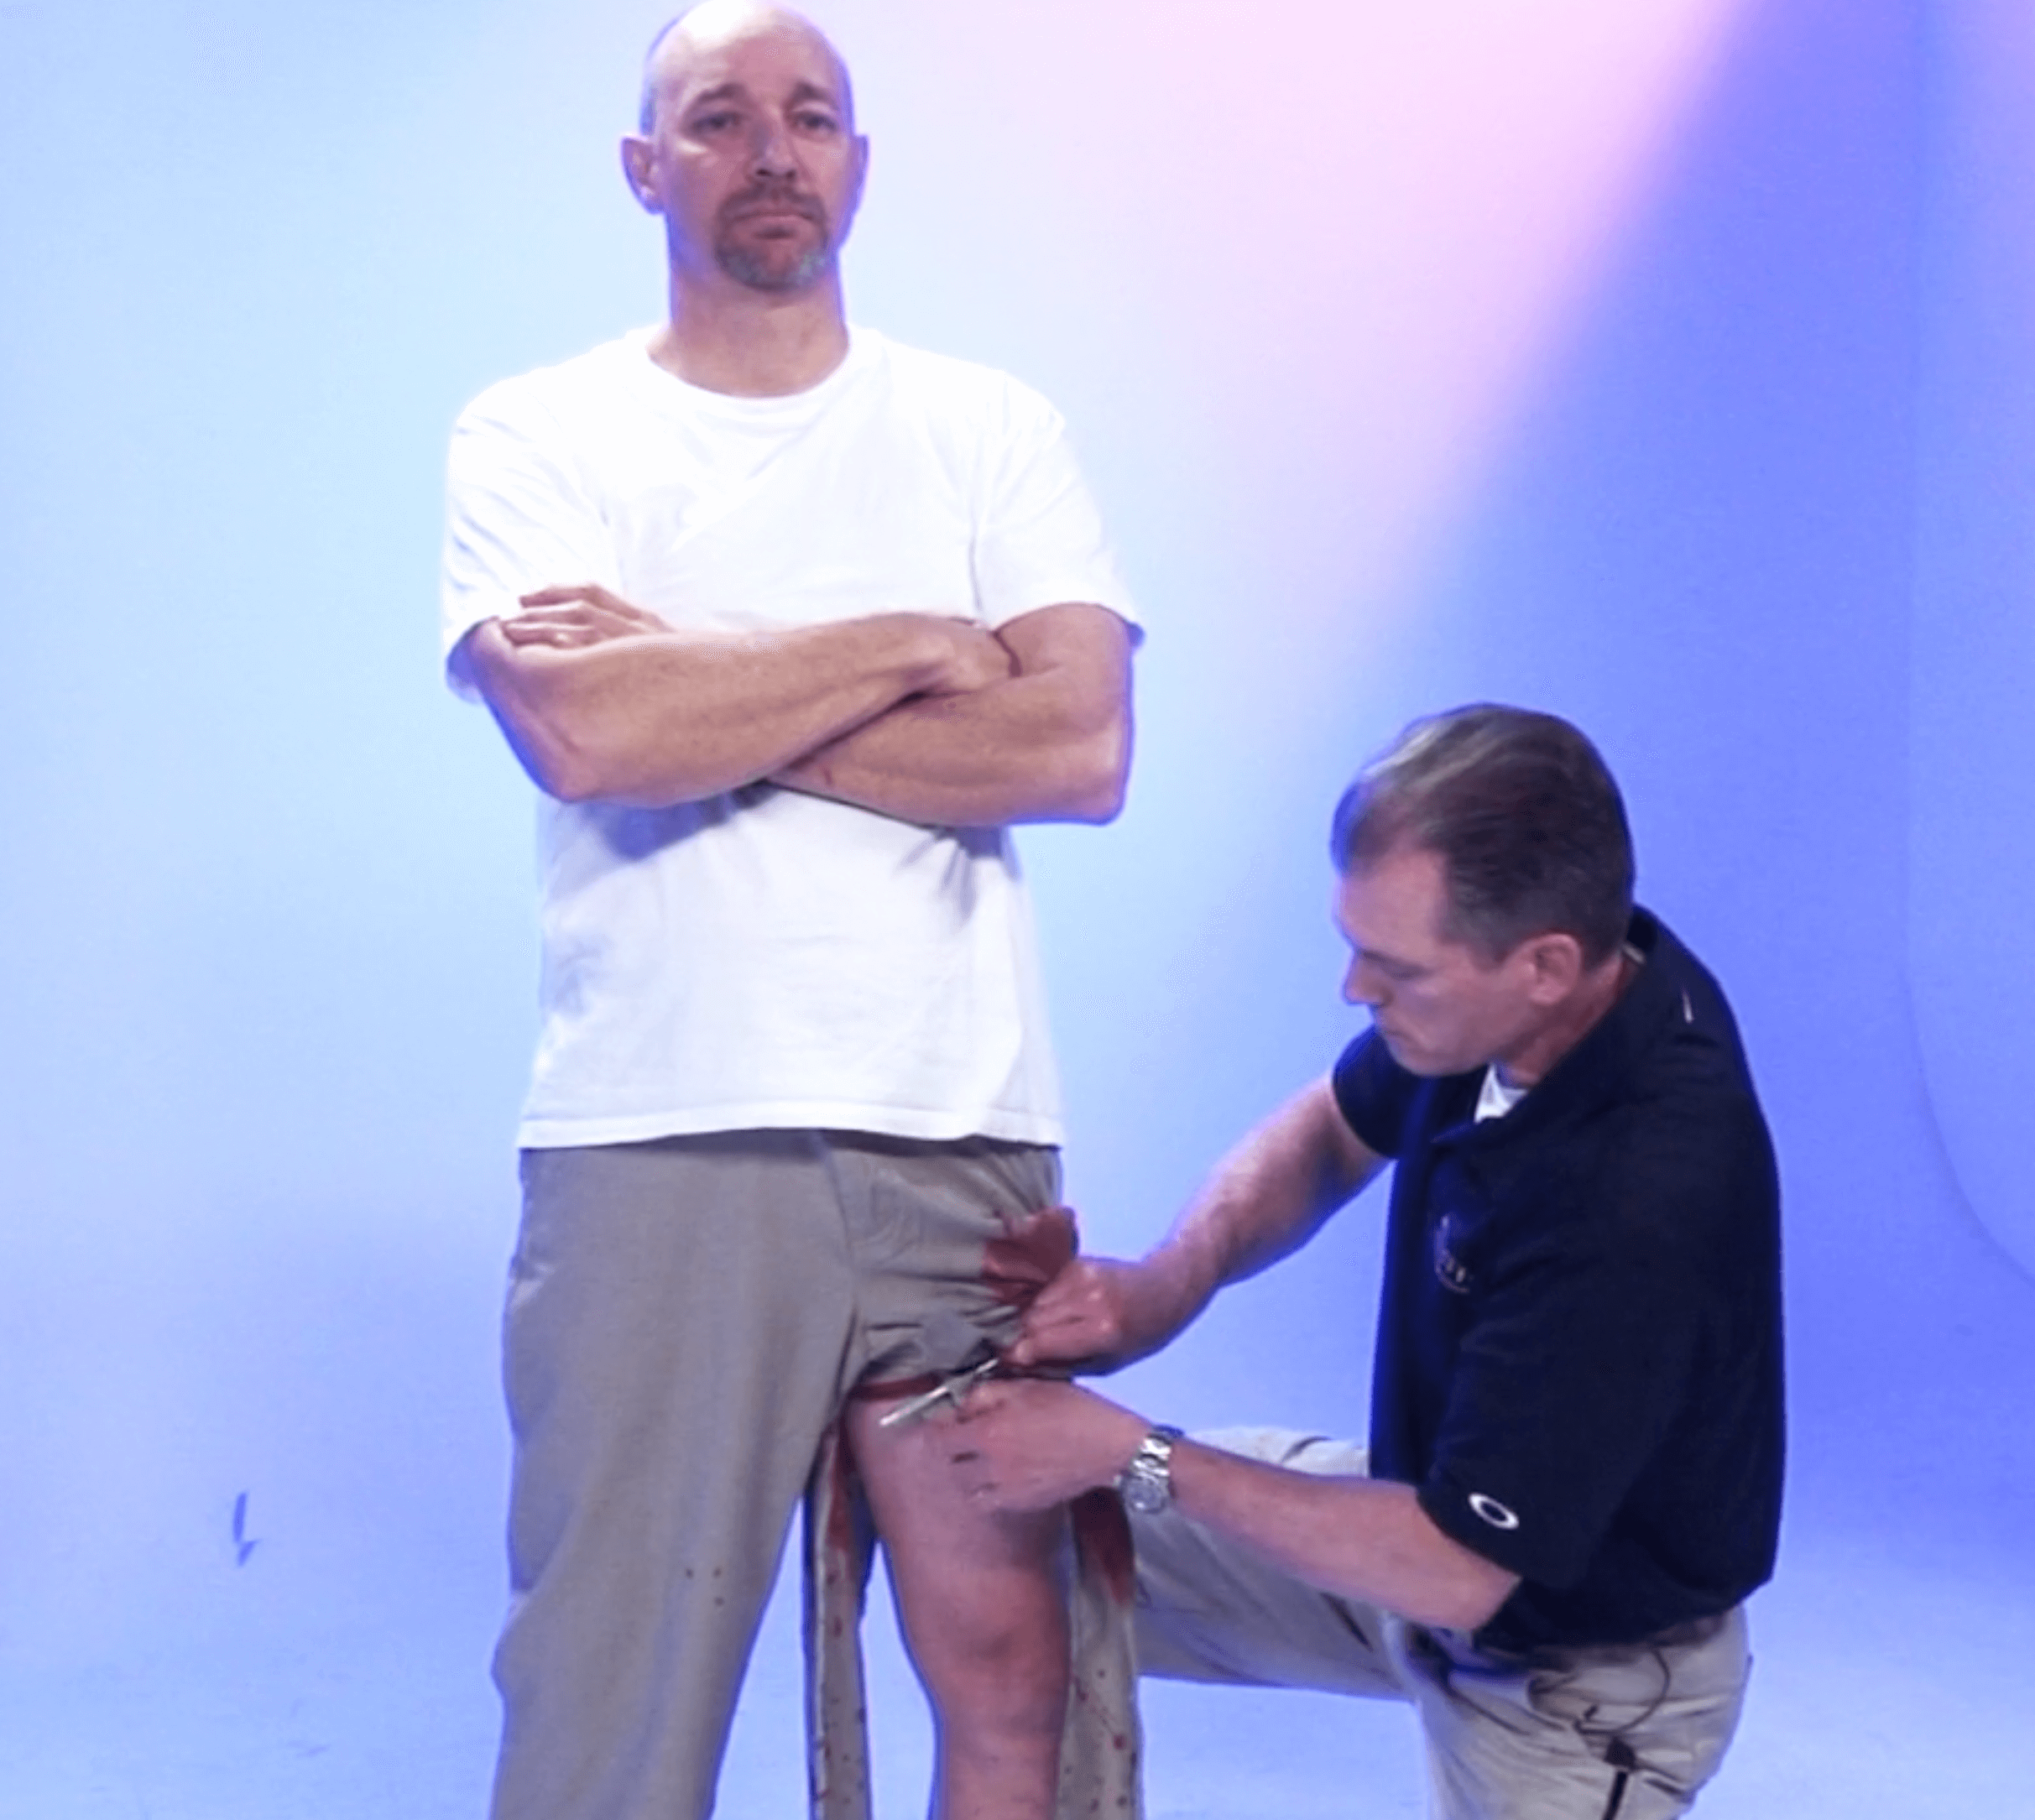 Dr. Shertz turns a stoic casualty's own pants into a doppler-proven tourniquet